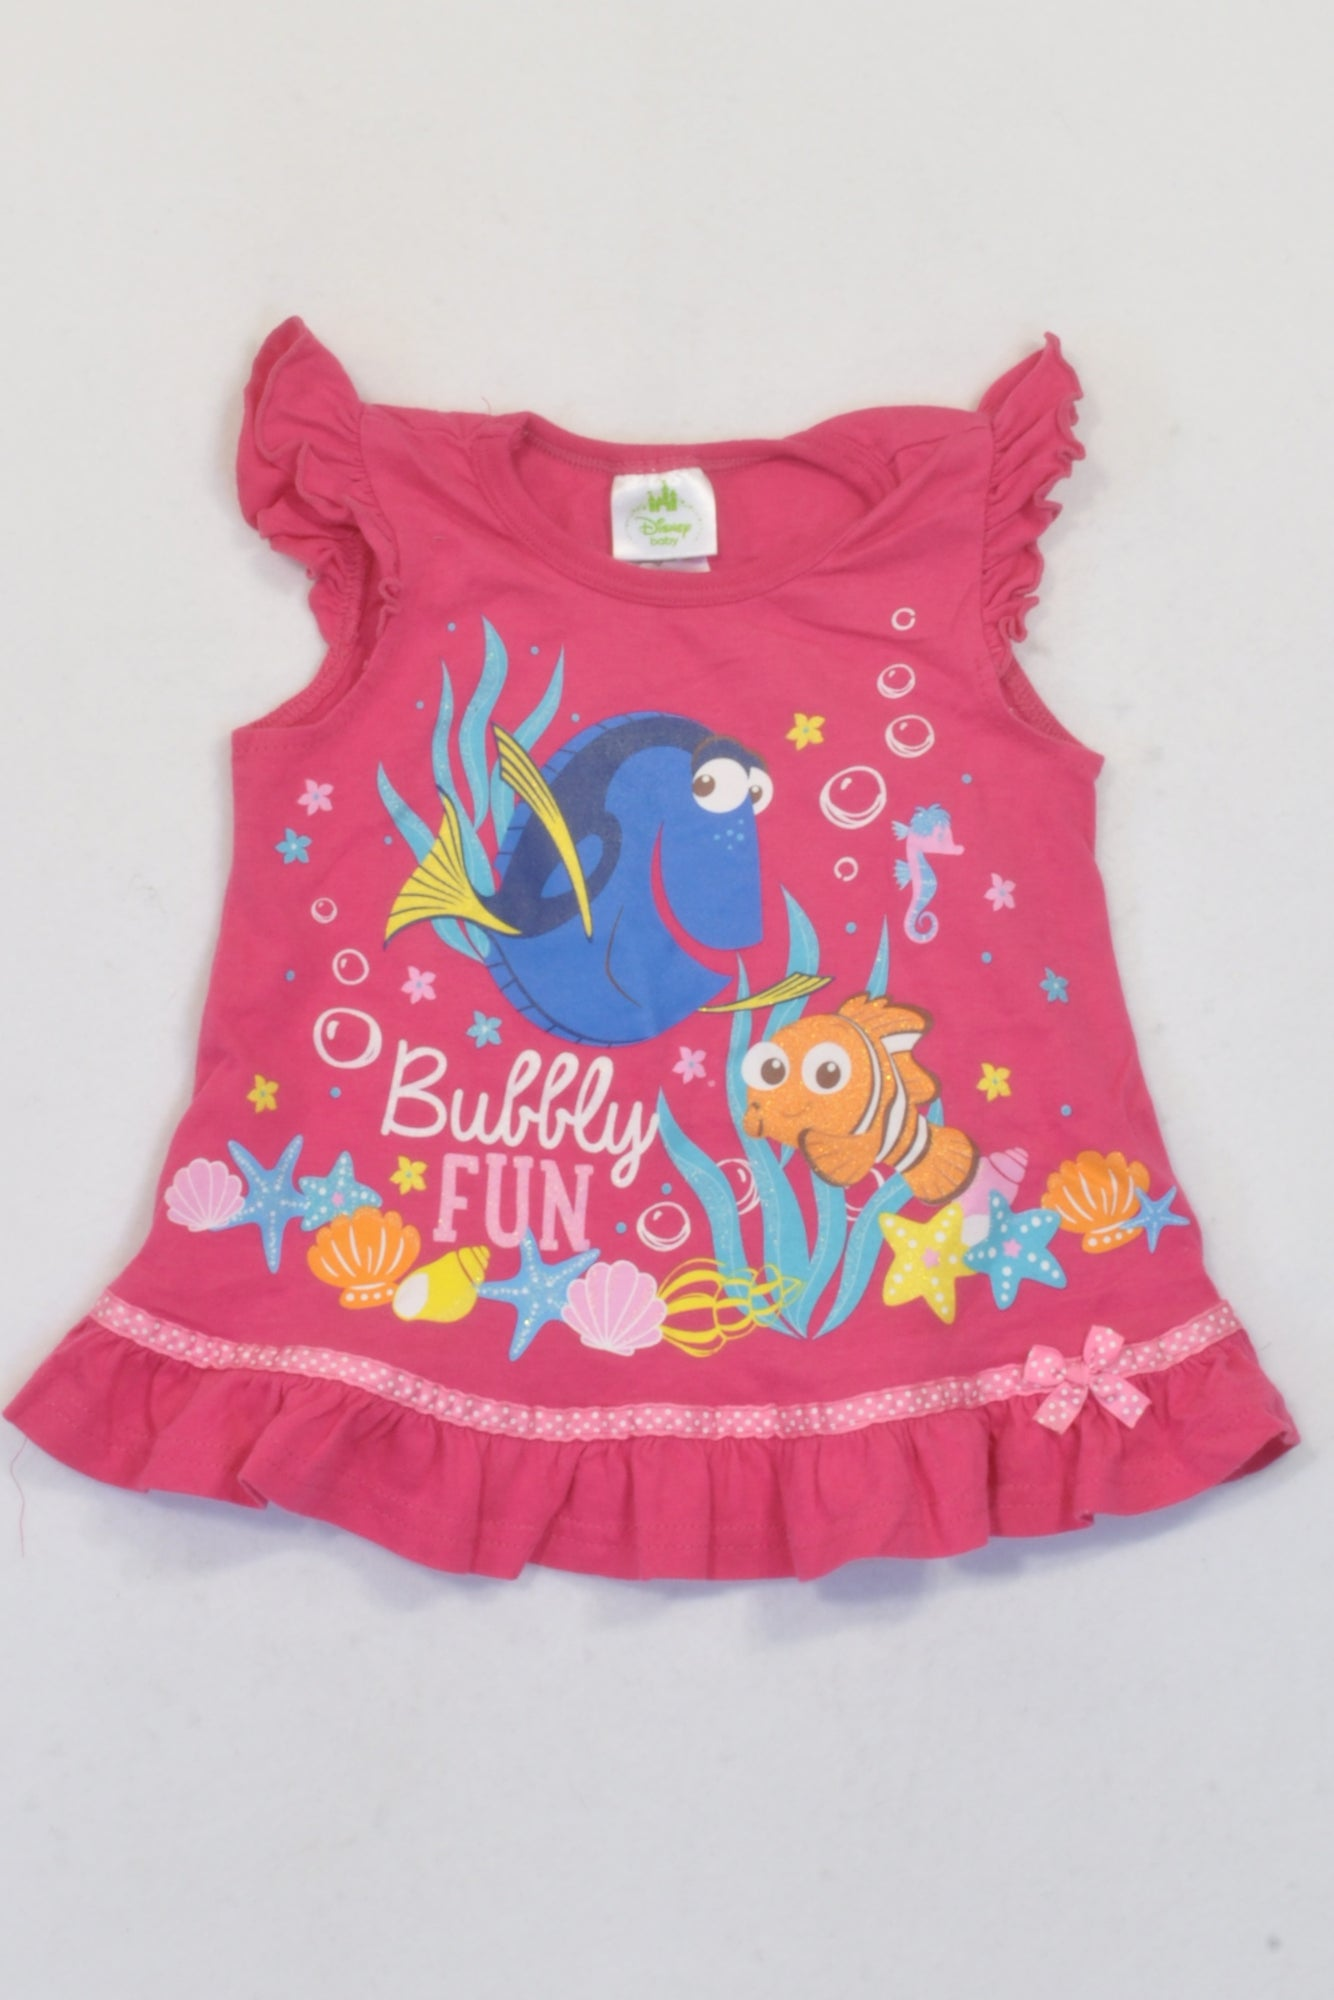 Edgars Pink Bubbly Fun Dory & Nemo Top Girls 9-12 months